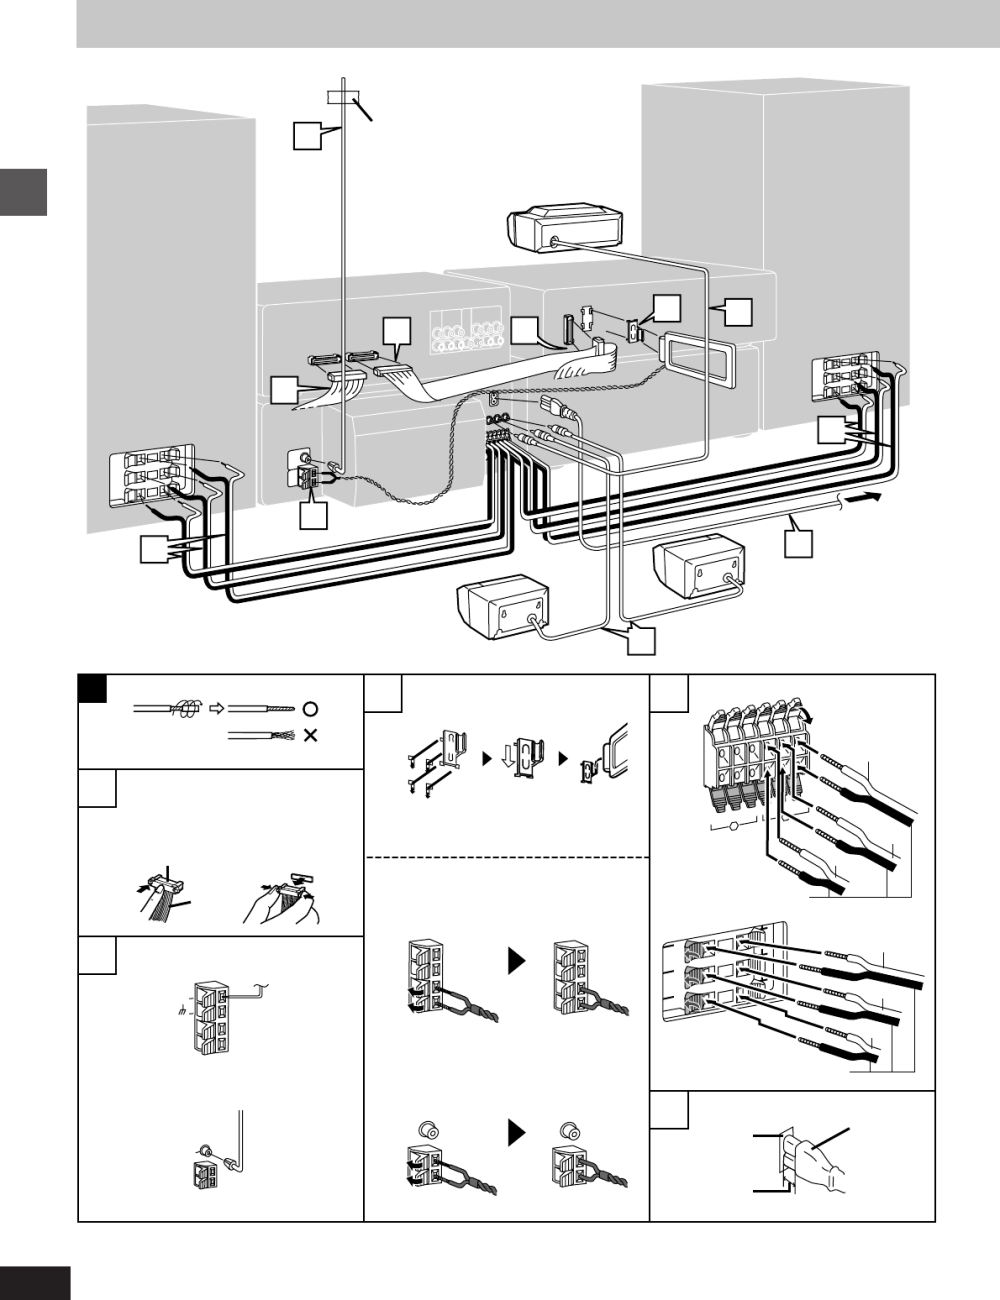 medium resolution of page 6 of technics home theater system sc eh760 user guide home stereo speaker wiring diagrams technics stereo speakers wiring diagram